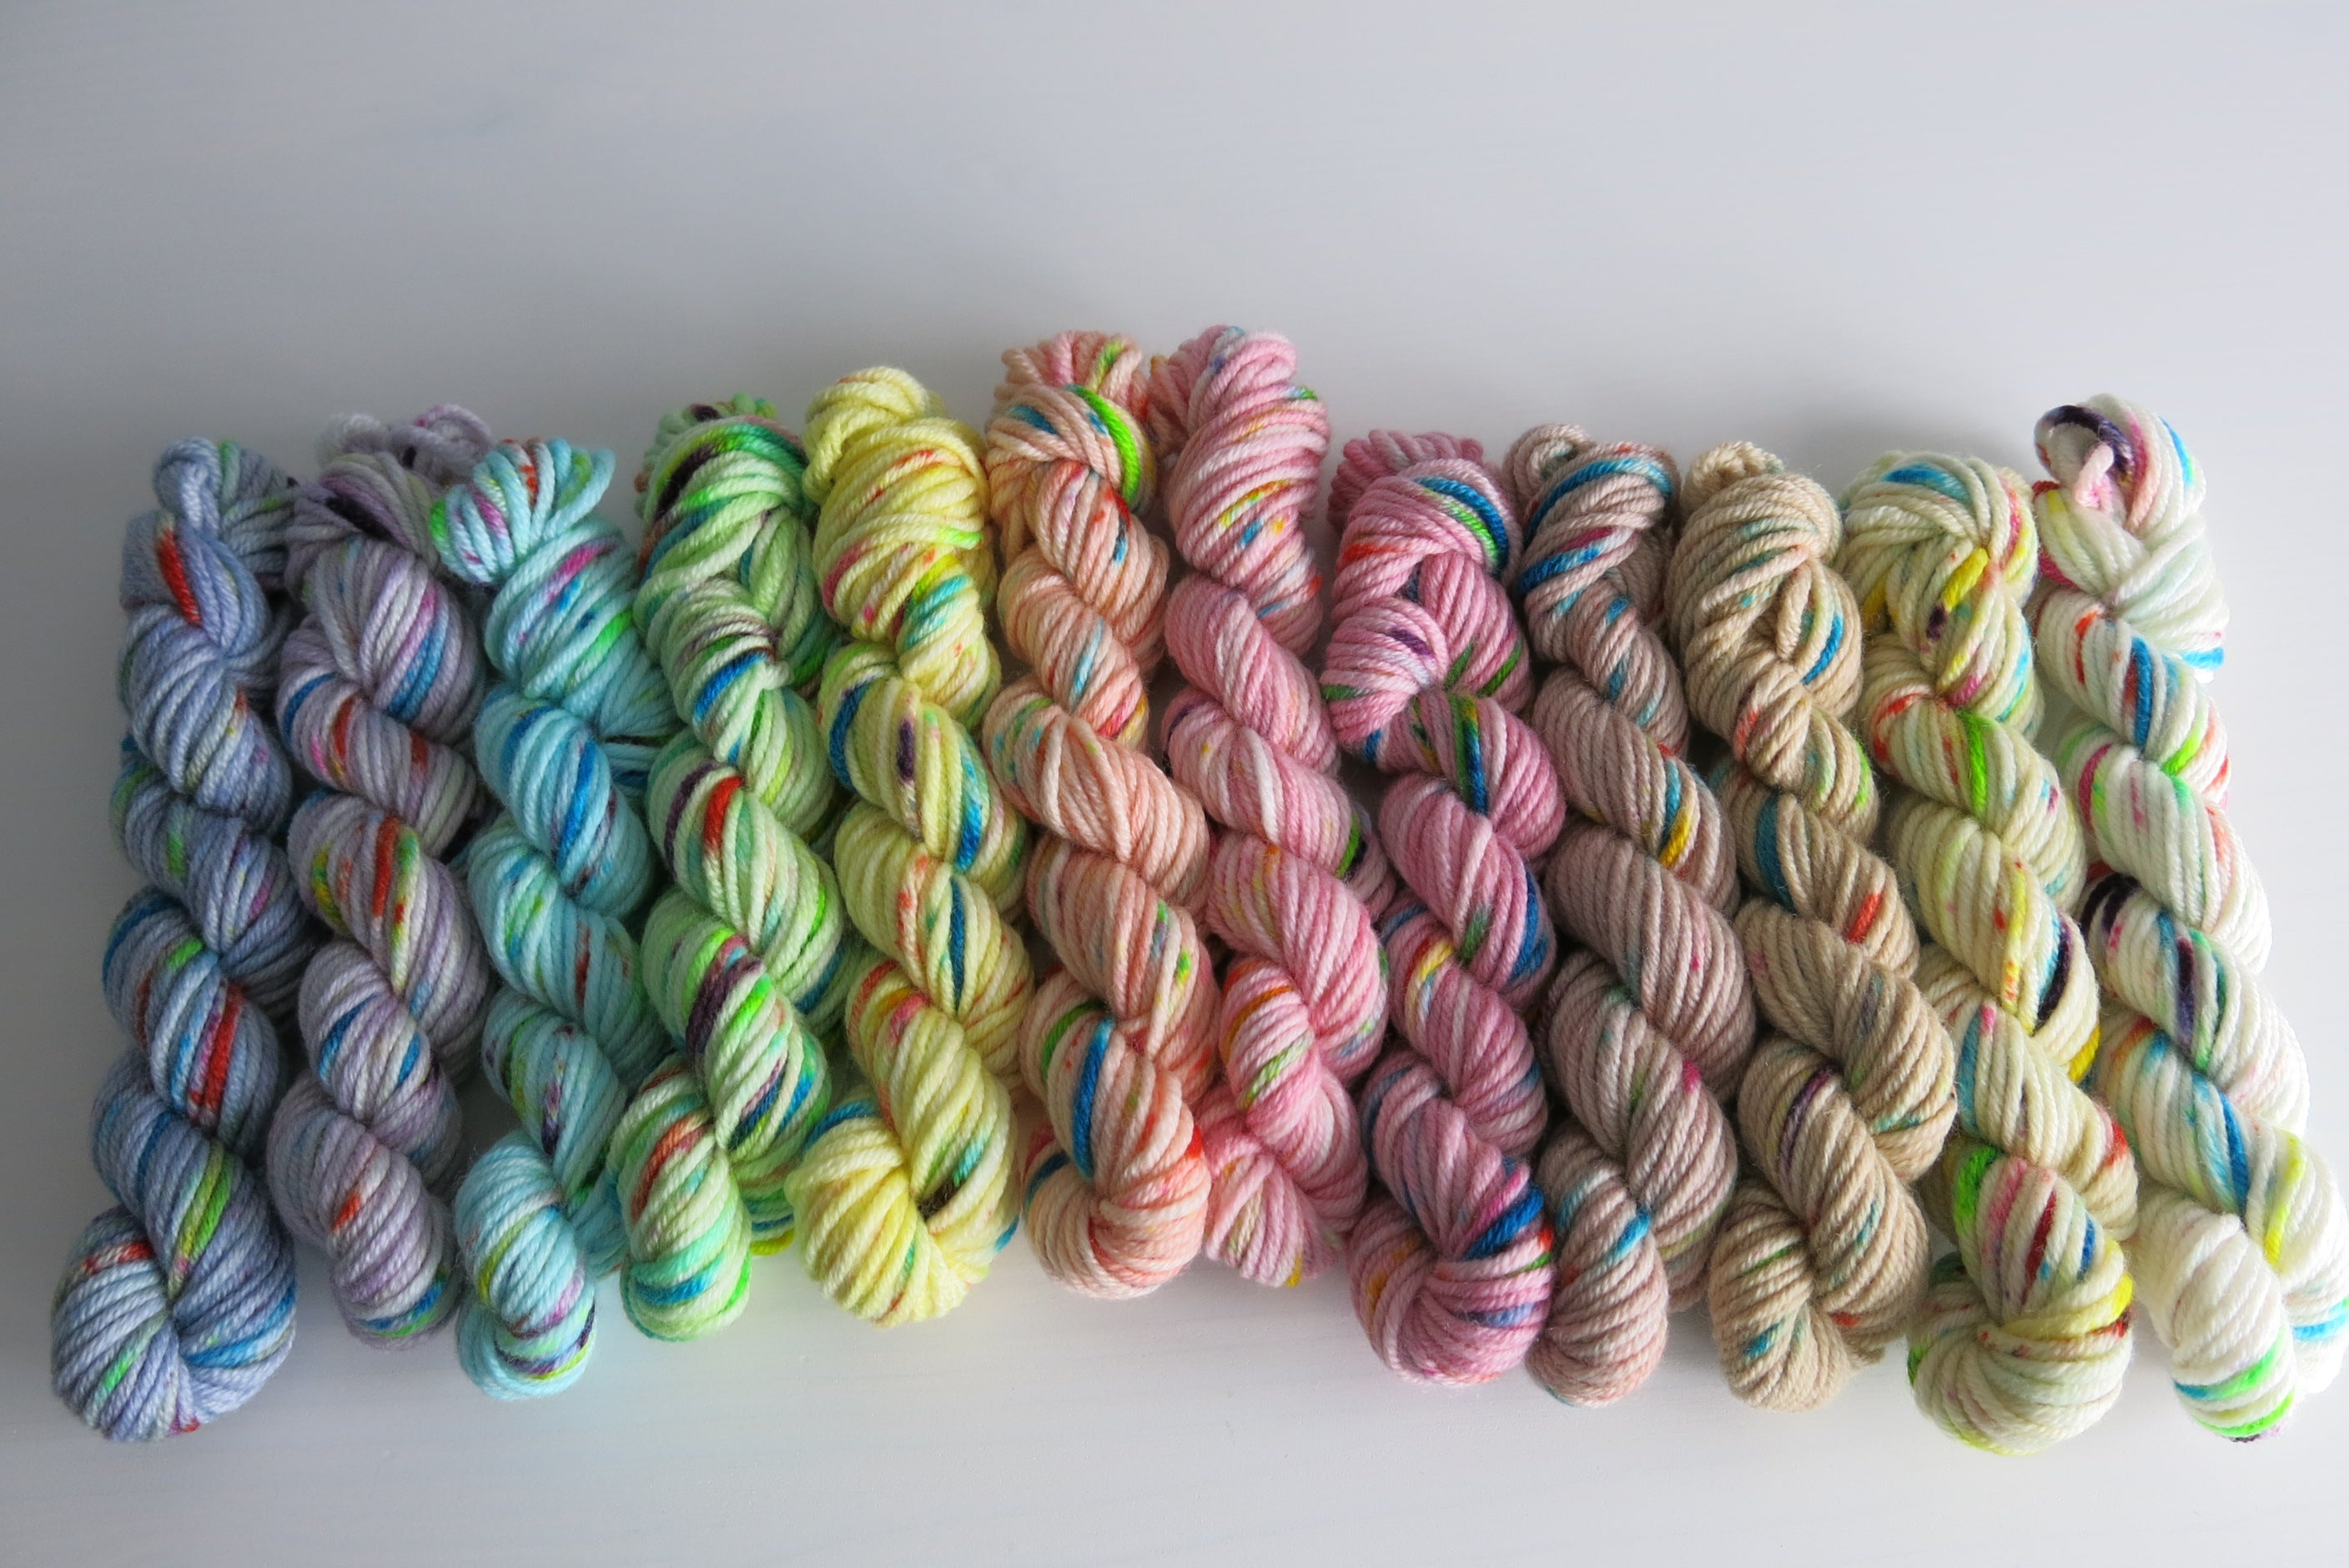 hand dyed pastel yarn mini skeins in a rainbow with speckles